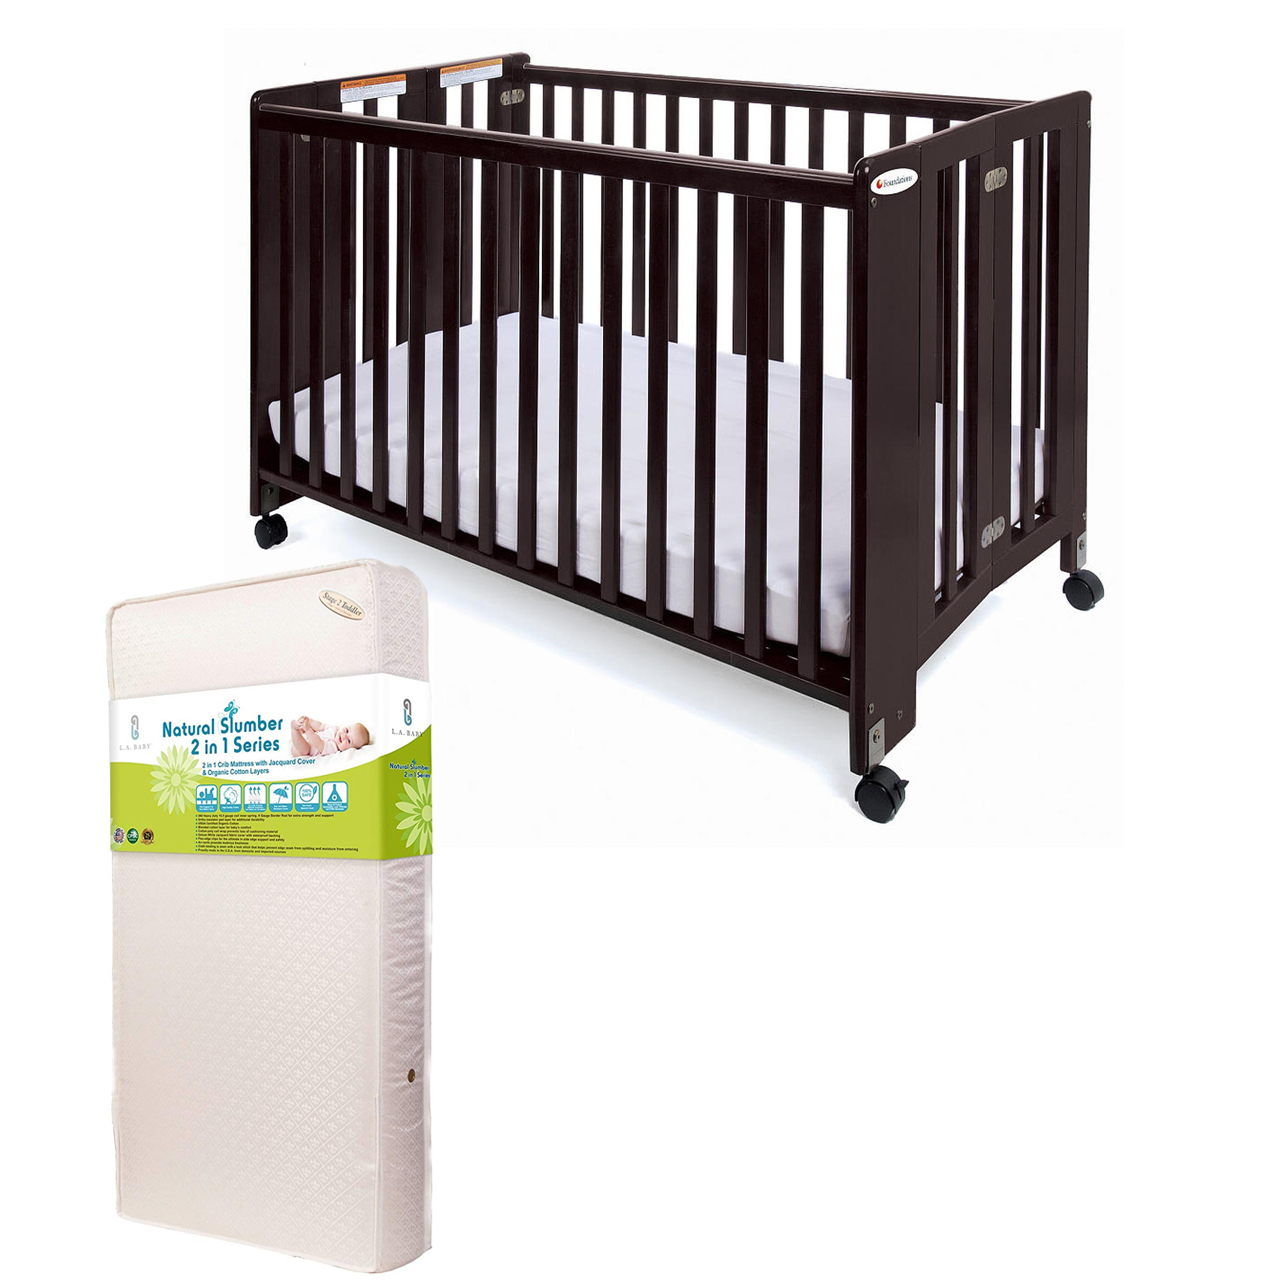 PACKAGE 7 (FULL CRIB)